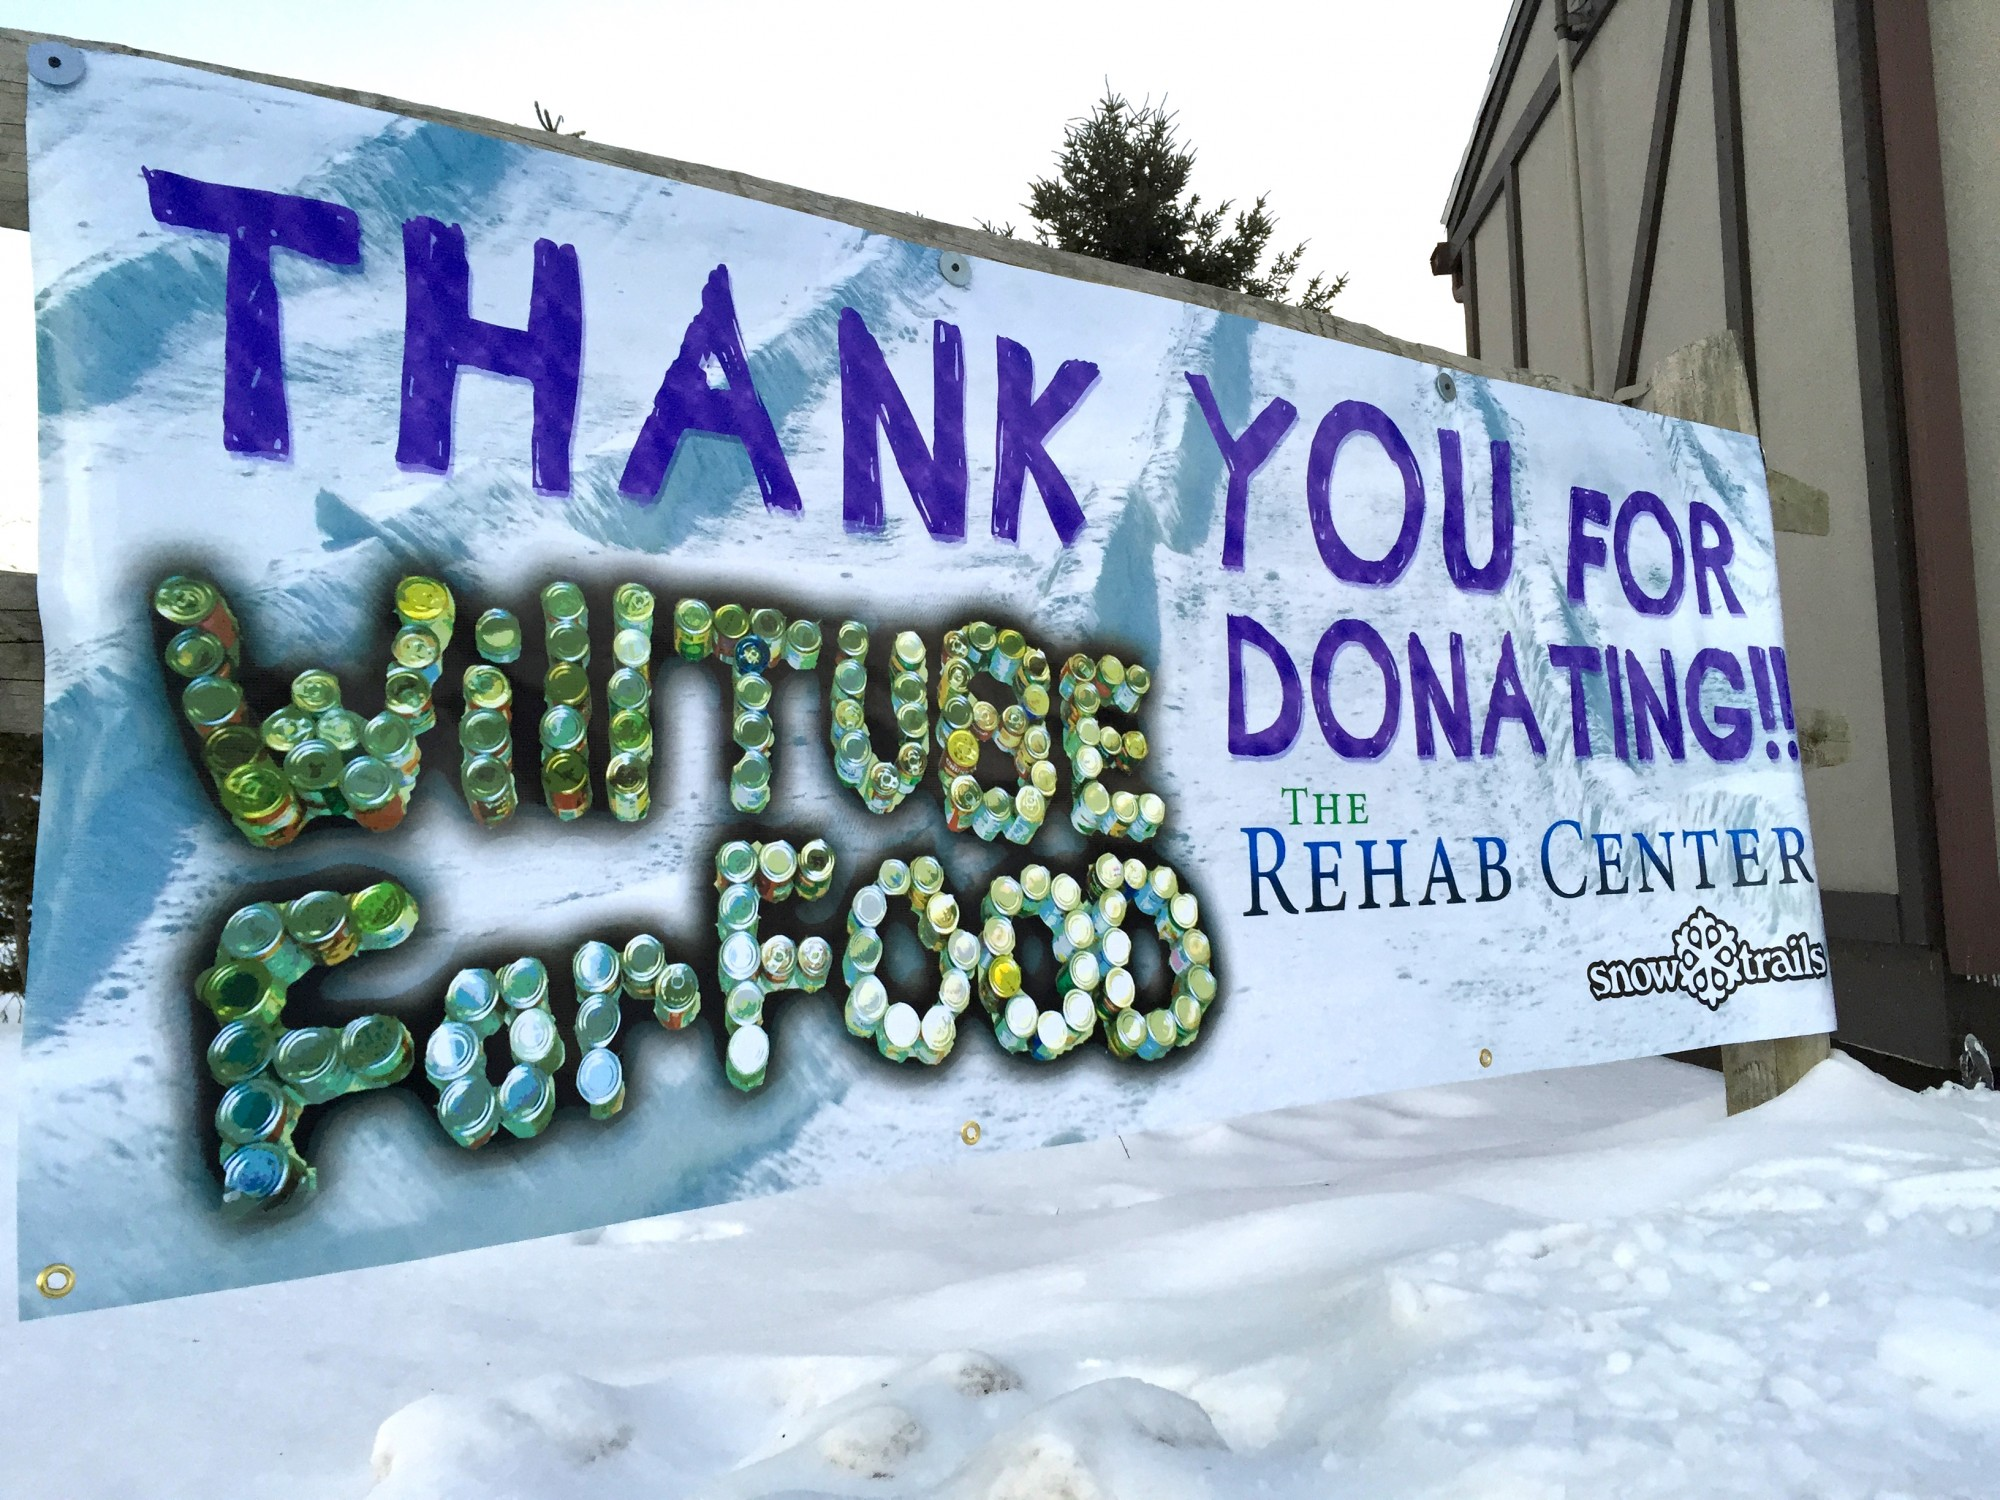 Will Tube For Food- Thank You for Donating!! The Rehab Center and Snow Trails